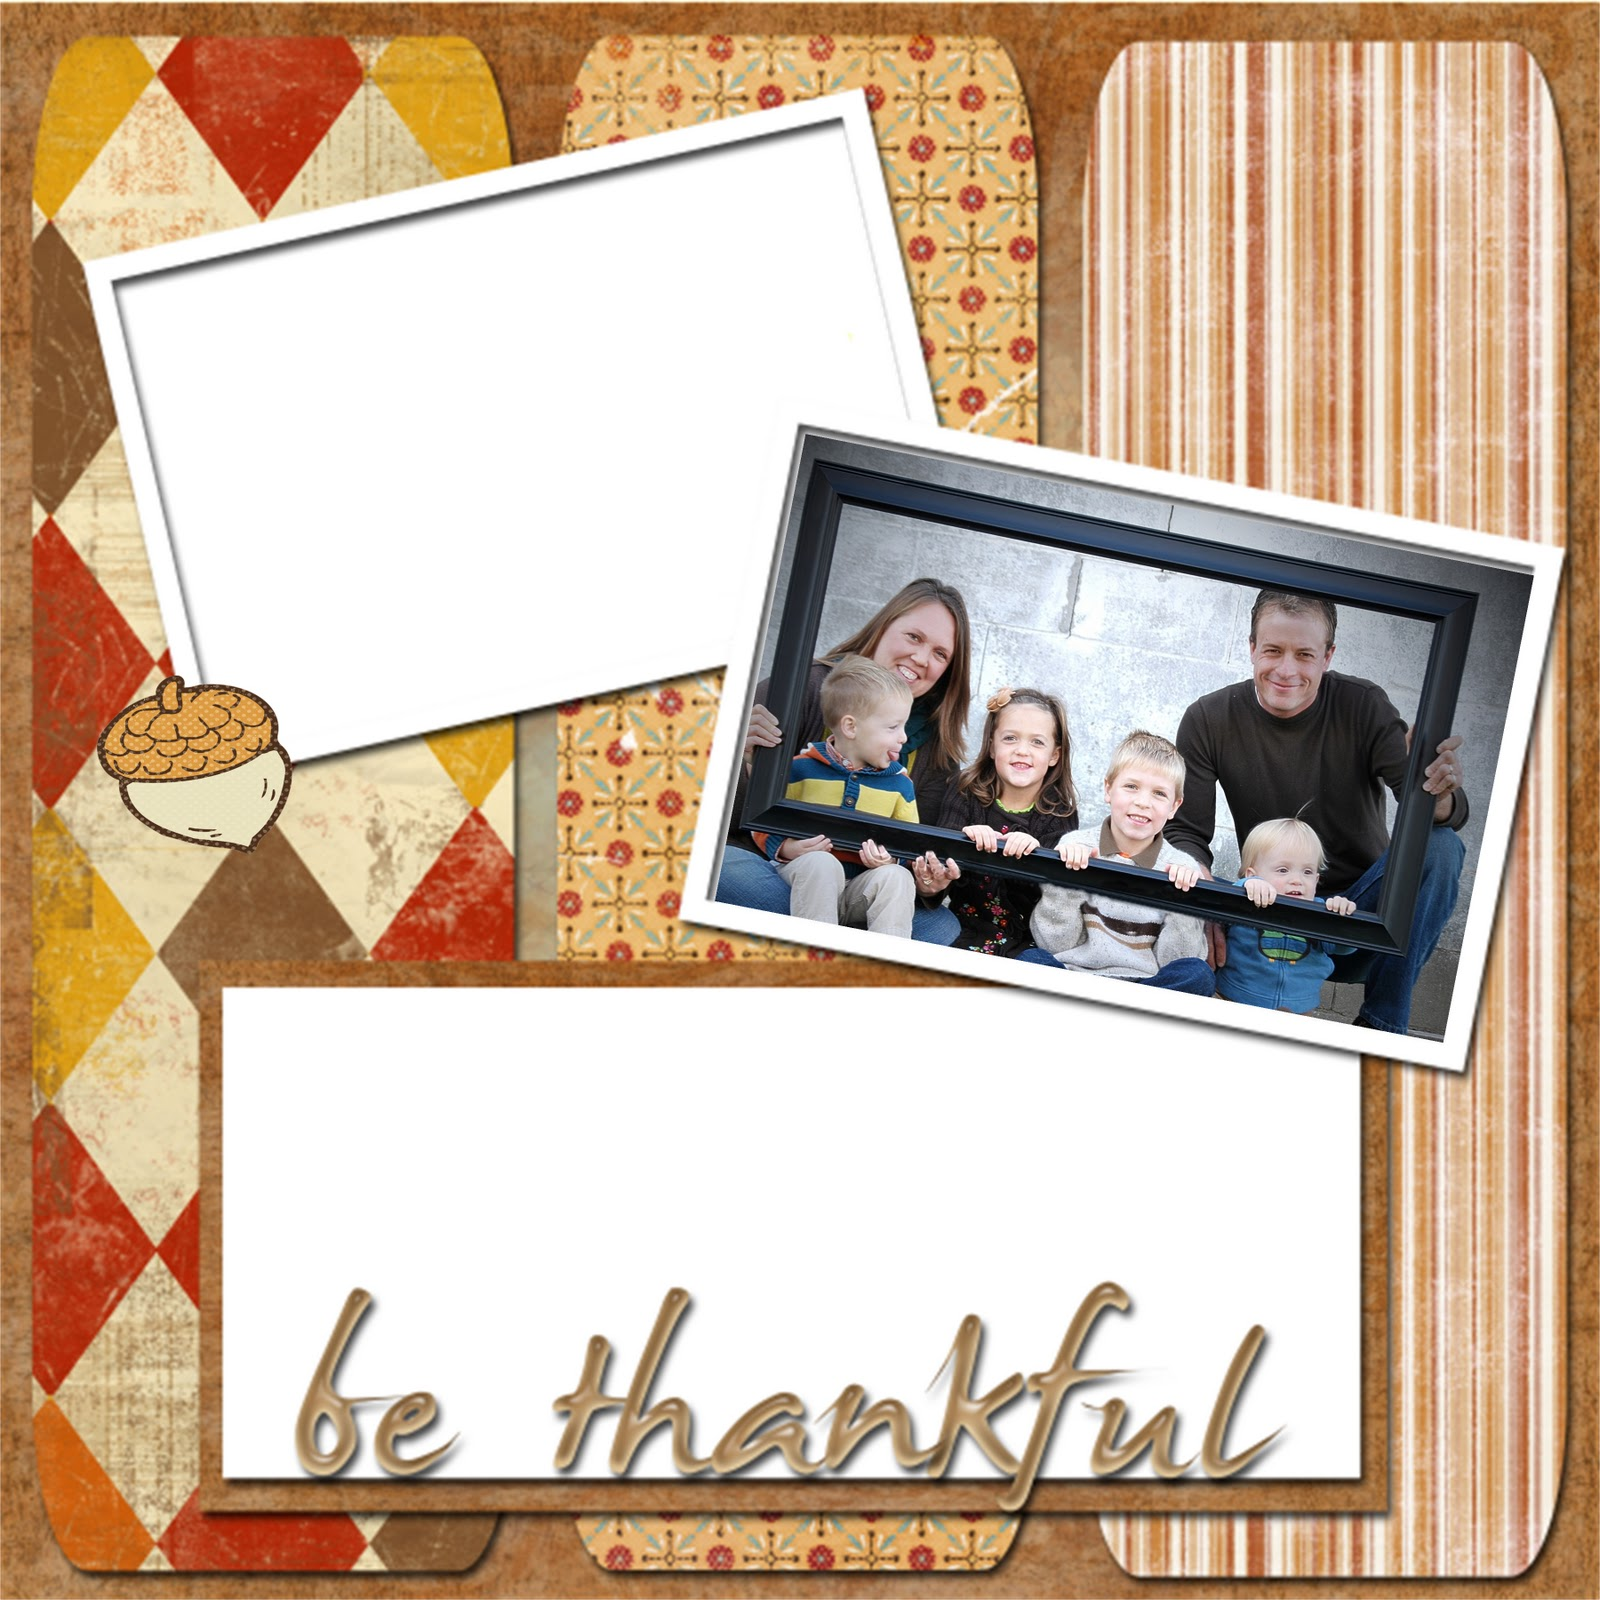 Abc scrapbook ideas list - Digital Scrapbooking Albums Also Offers An Abc Memory Book Ideal For Parents Of Preschool Age Children The Page Layouts Have Plenty Of Space For Picturing